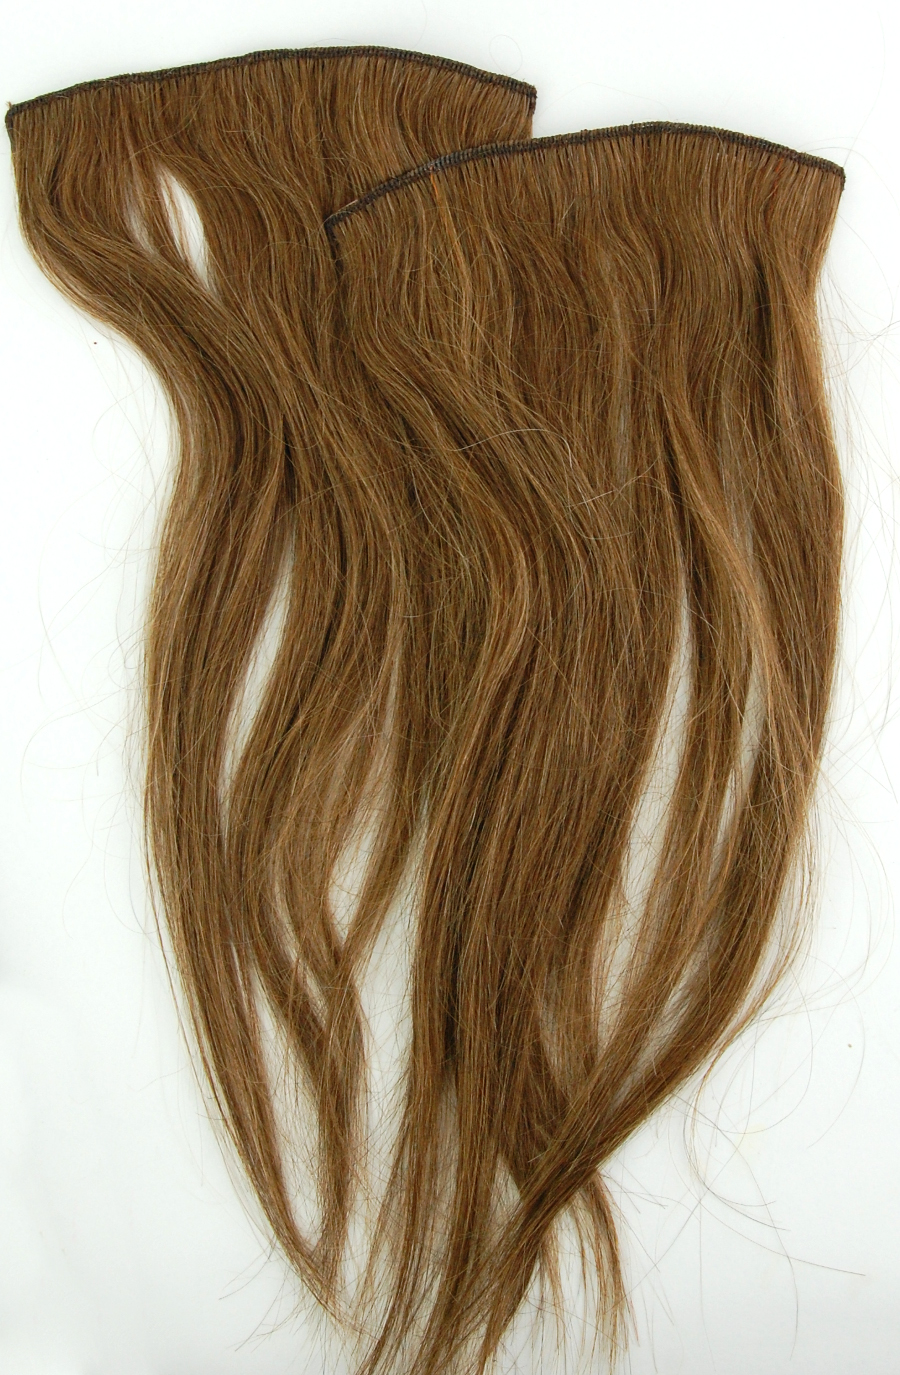 Irresistible me royal remy clip in hair extensions in light brown irresistible me royal remy hair extensions clip light brown review pmusecretfo Images